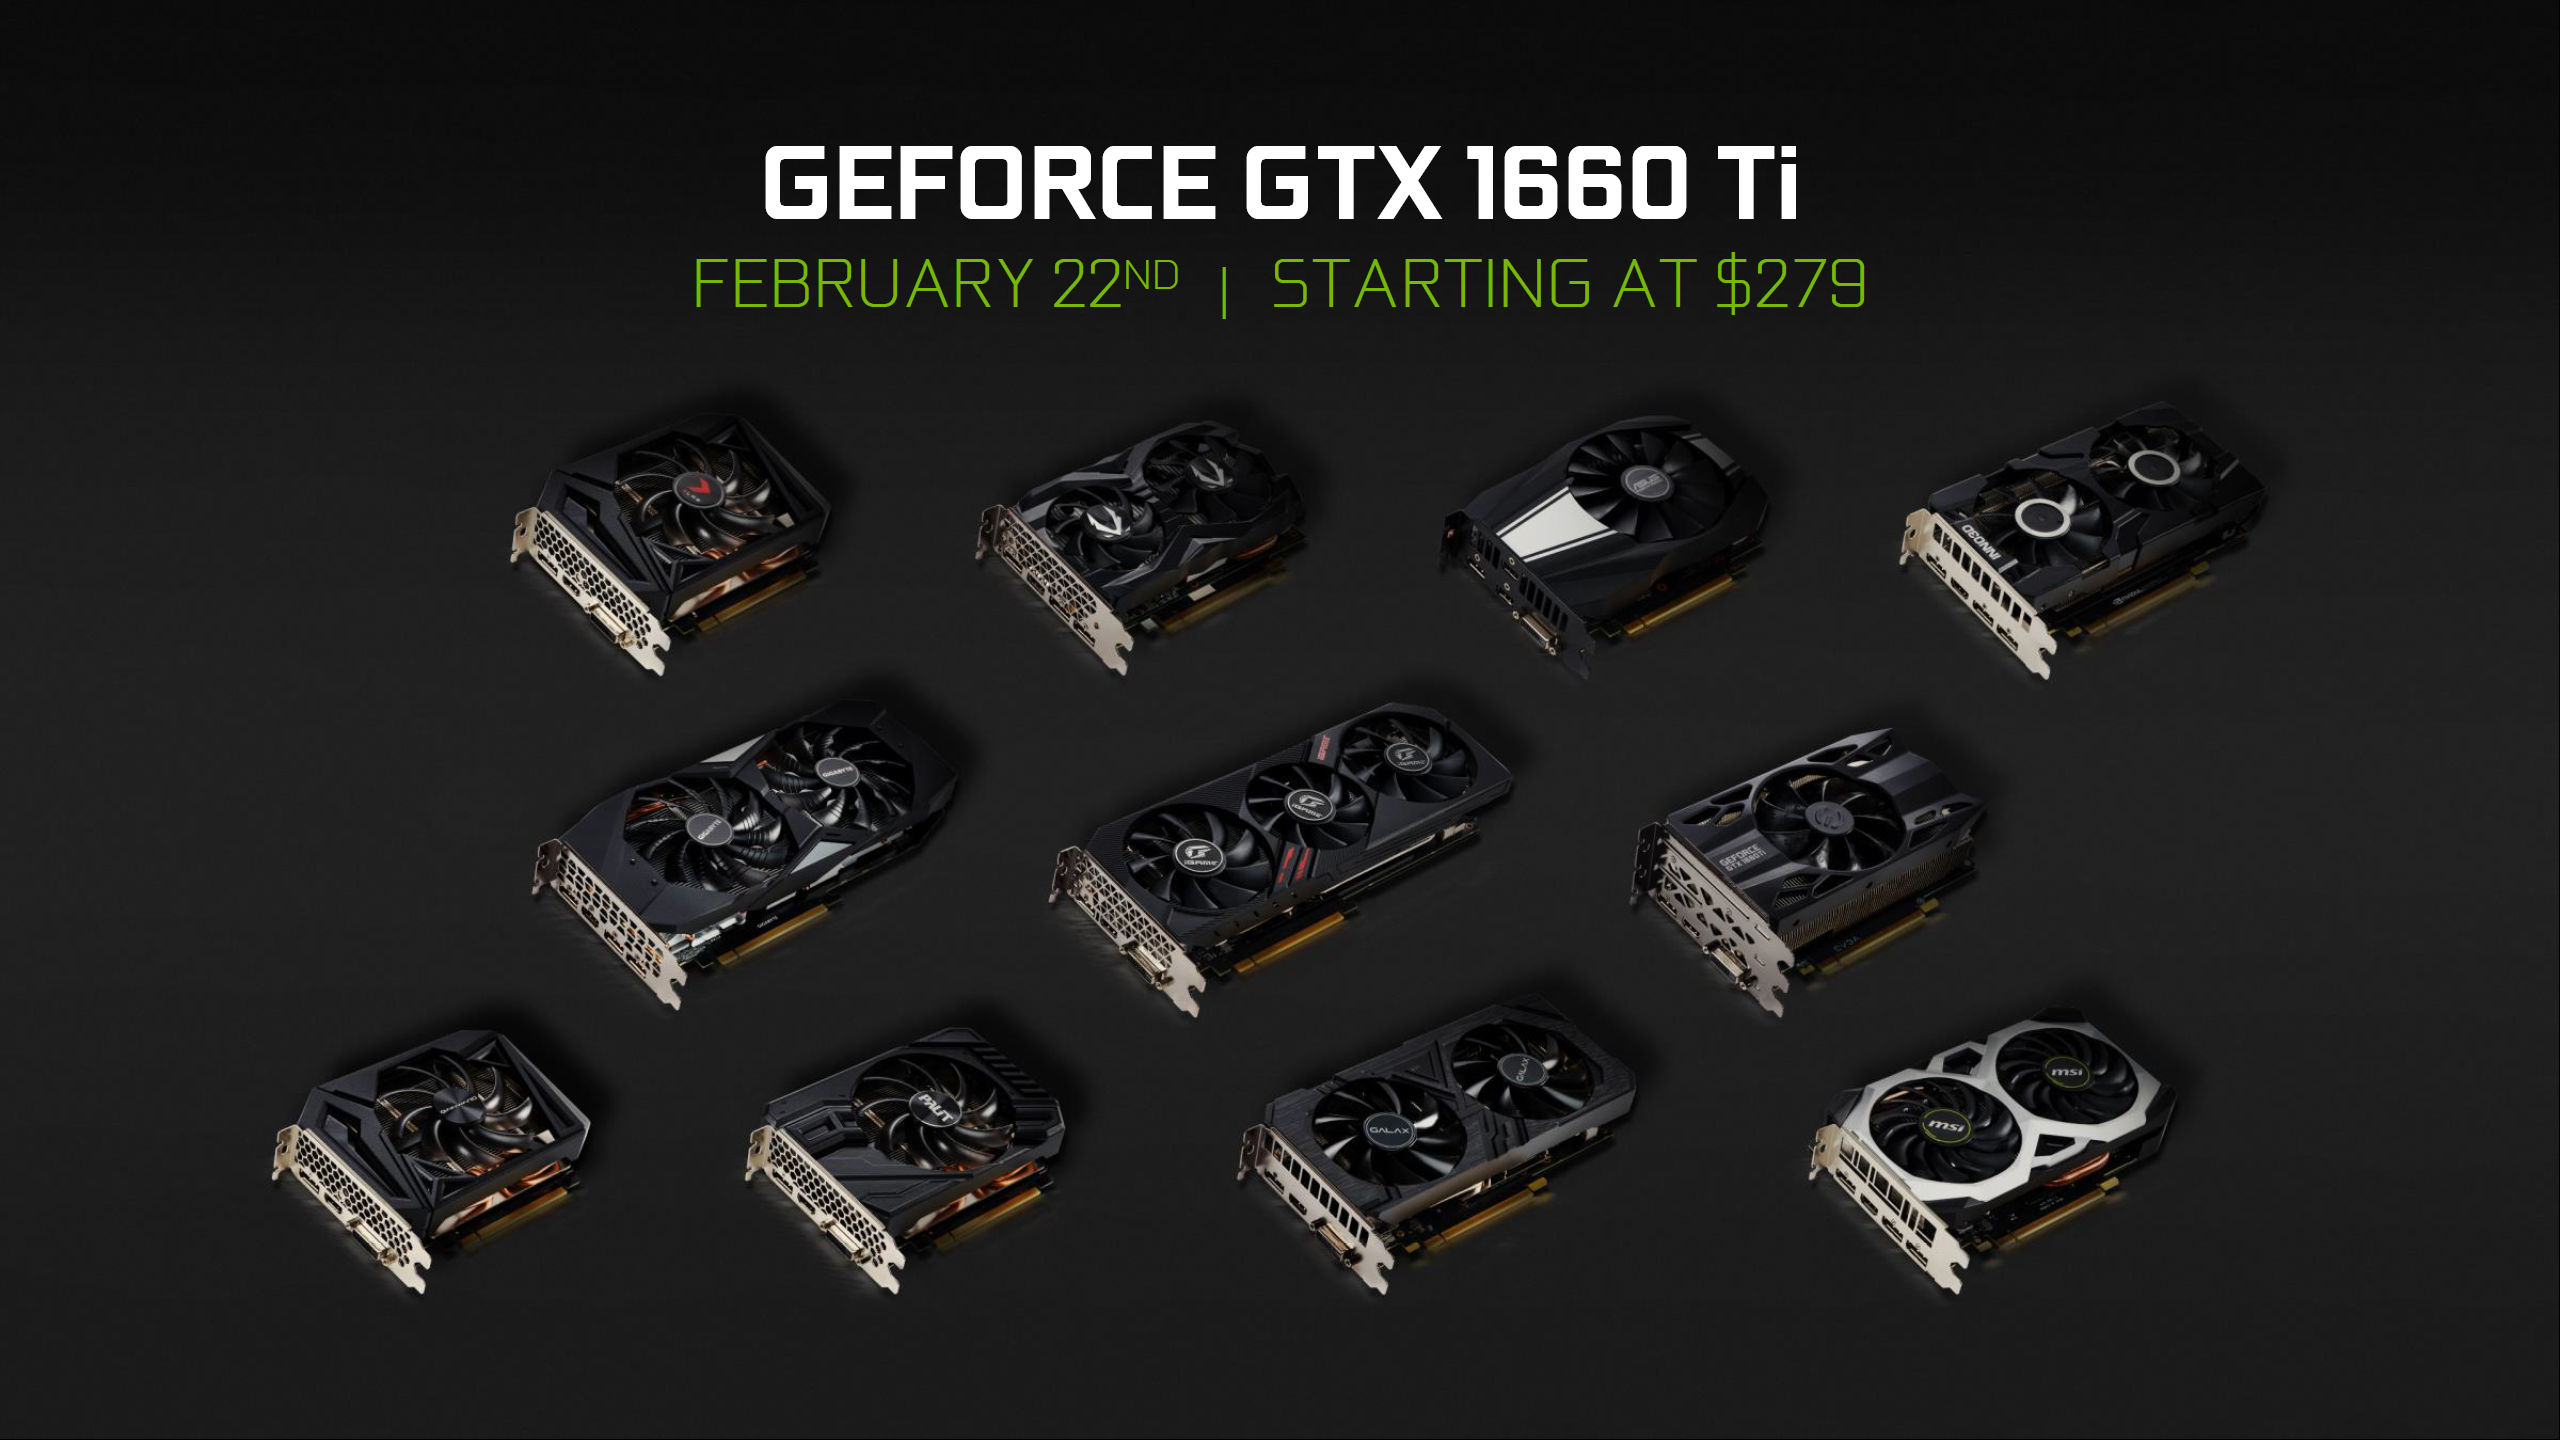 Specifications leak for rumored mid-range GeForce GTX 1650